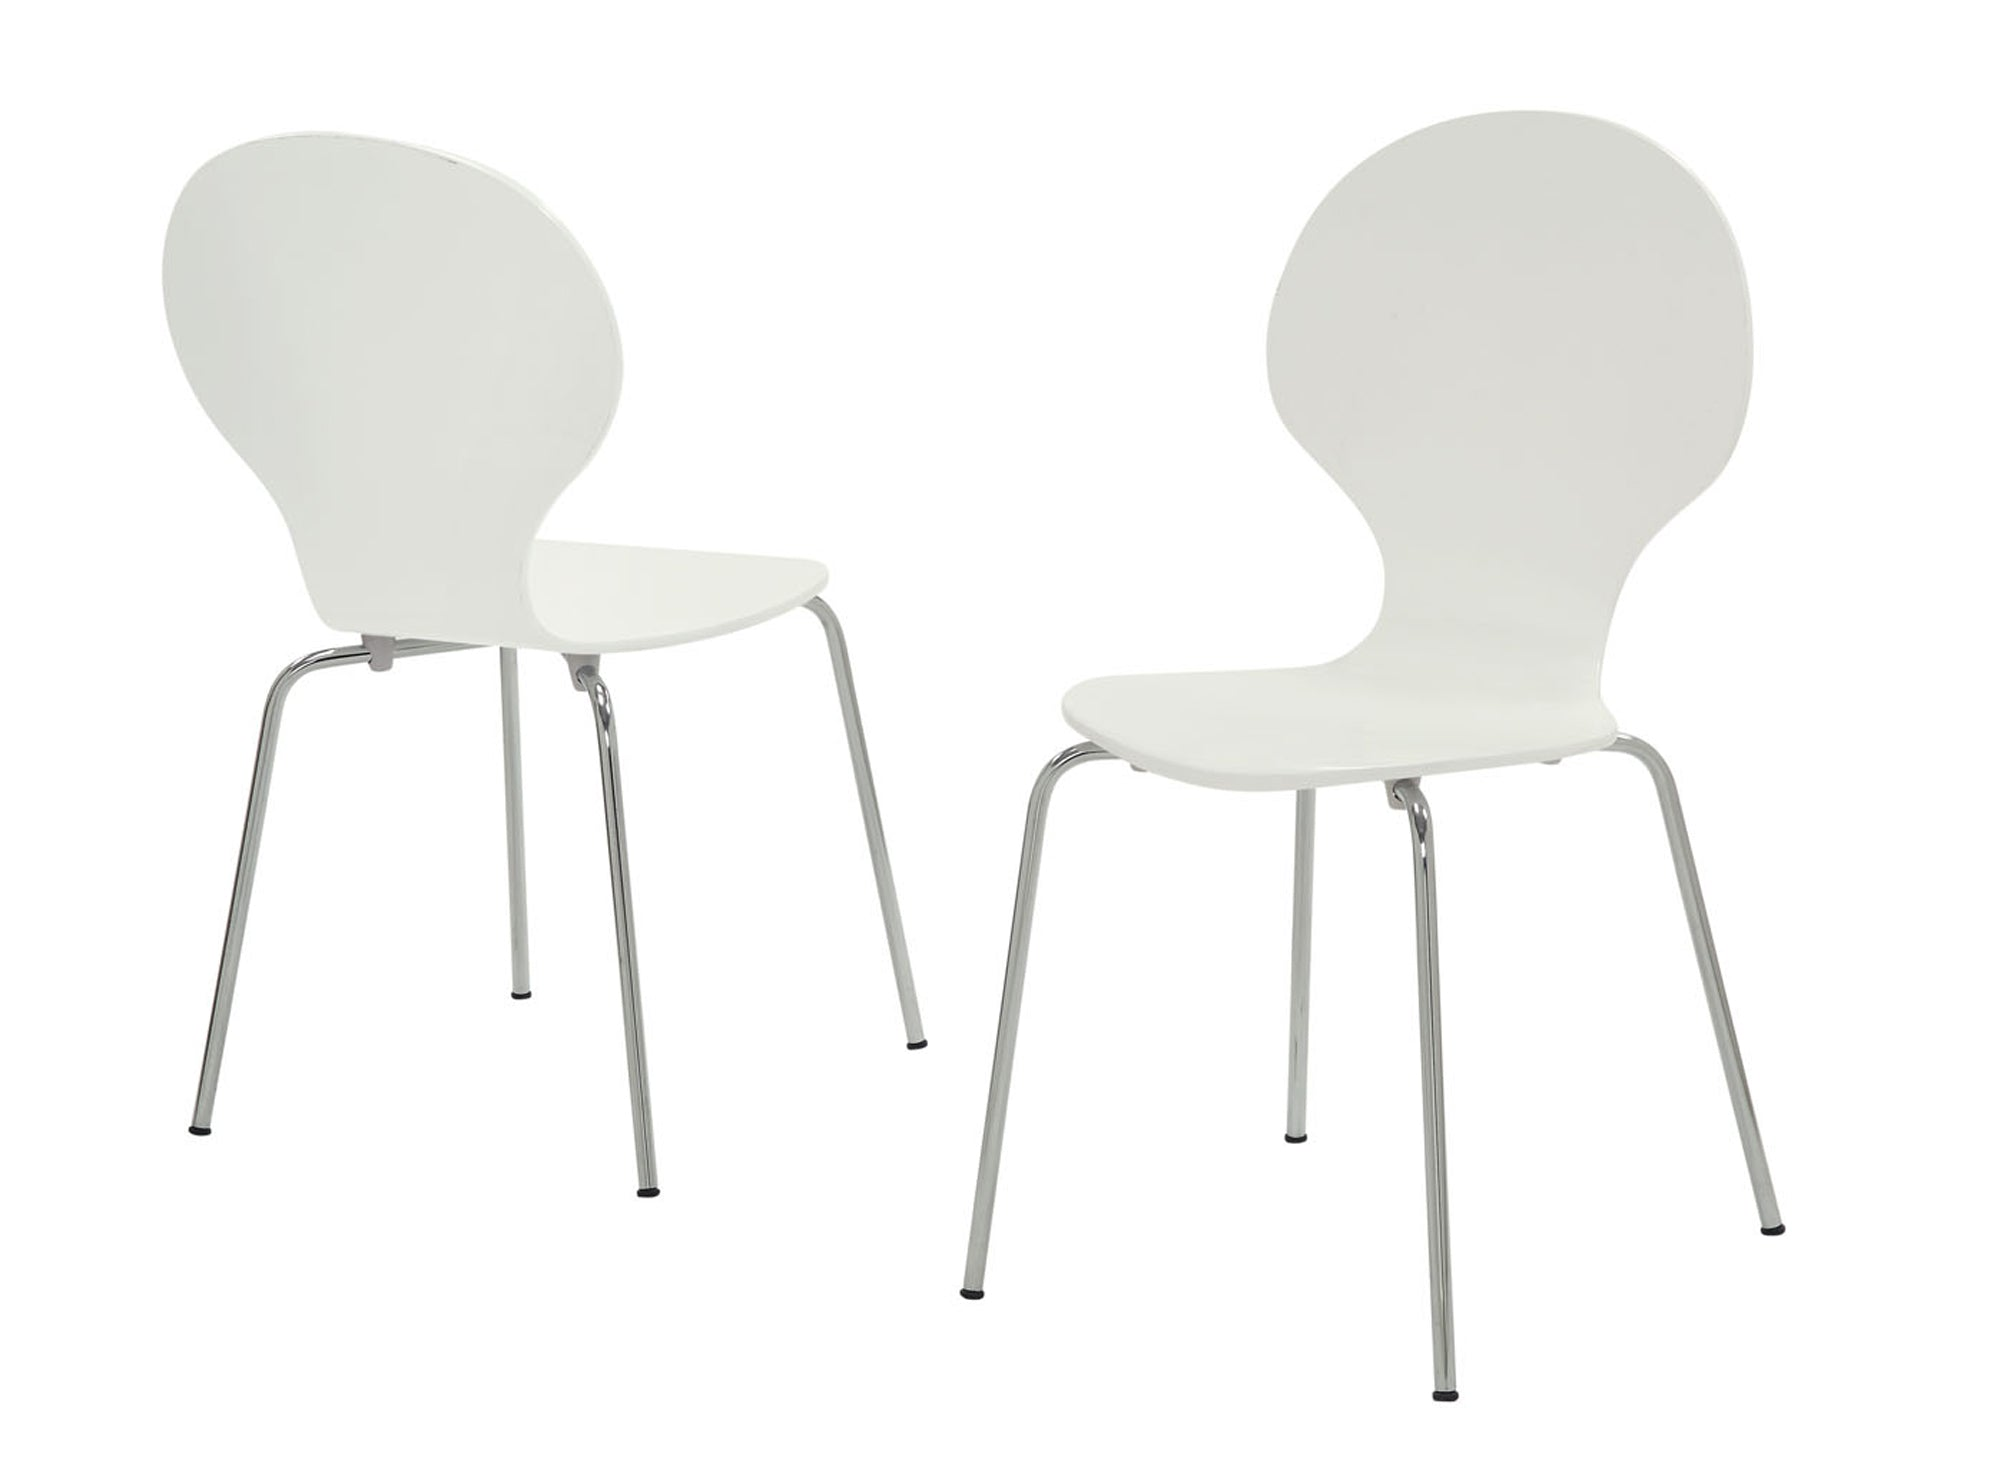 "63'.75"" x 53'.25"" x 102"" White, Metal - 4 Dining Chairs"